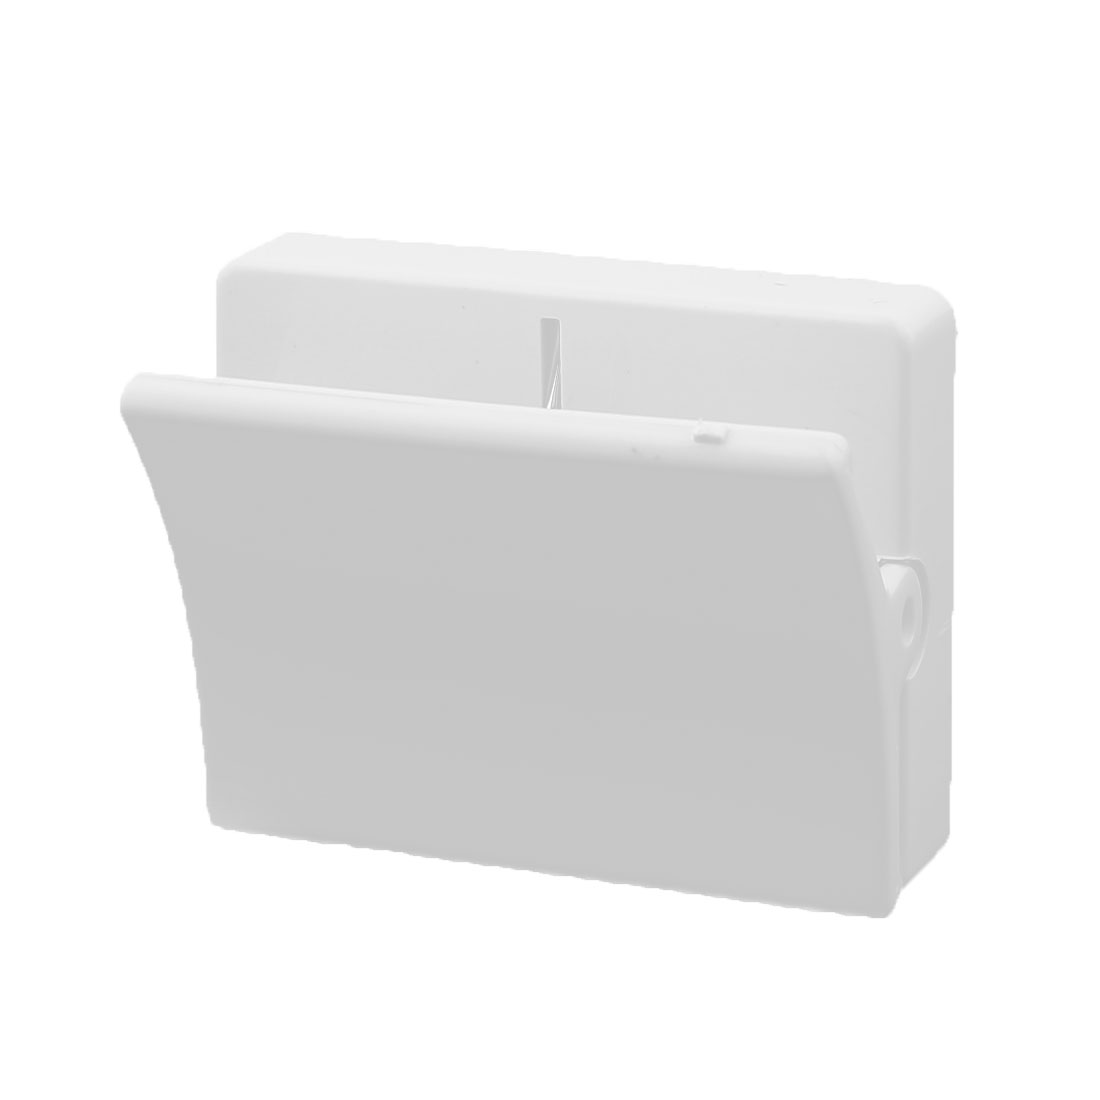 Refrigerator Wall Plastic Spring Loaded Square Memo Note Holder Magnetic Clip White